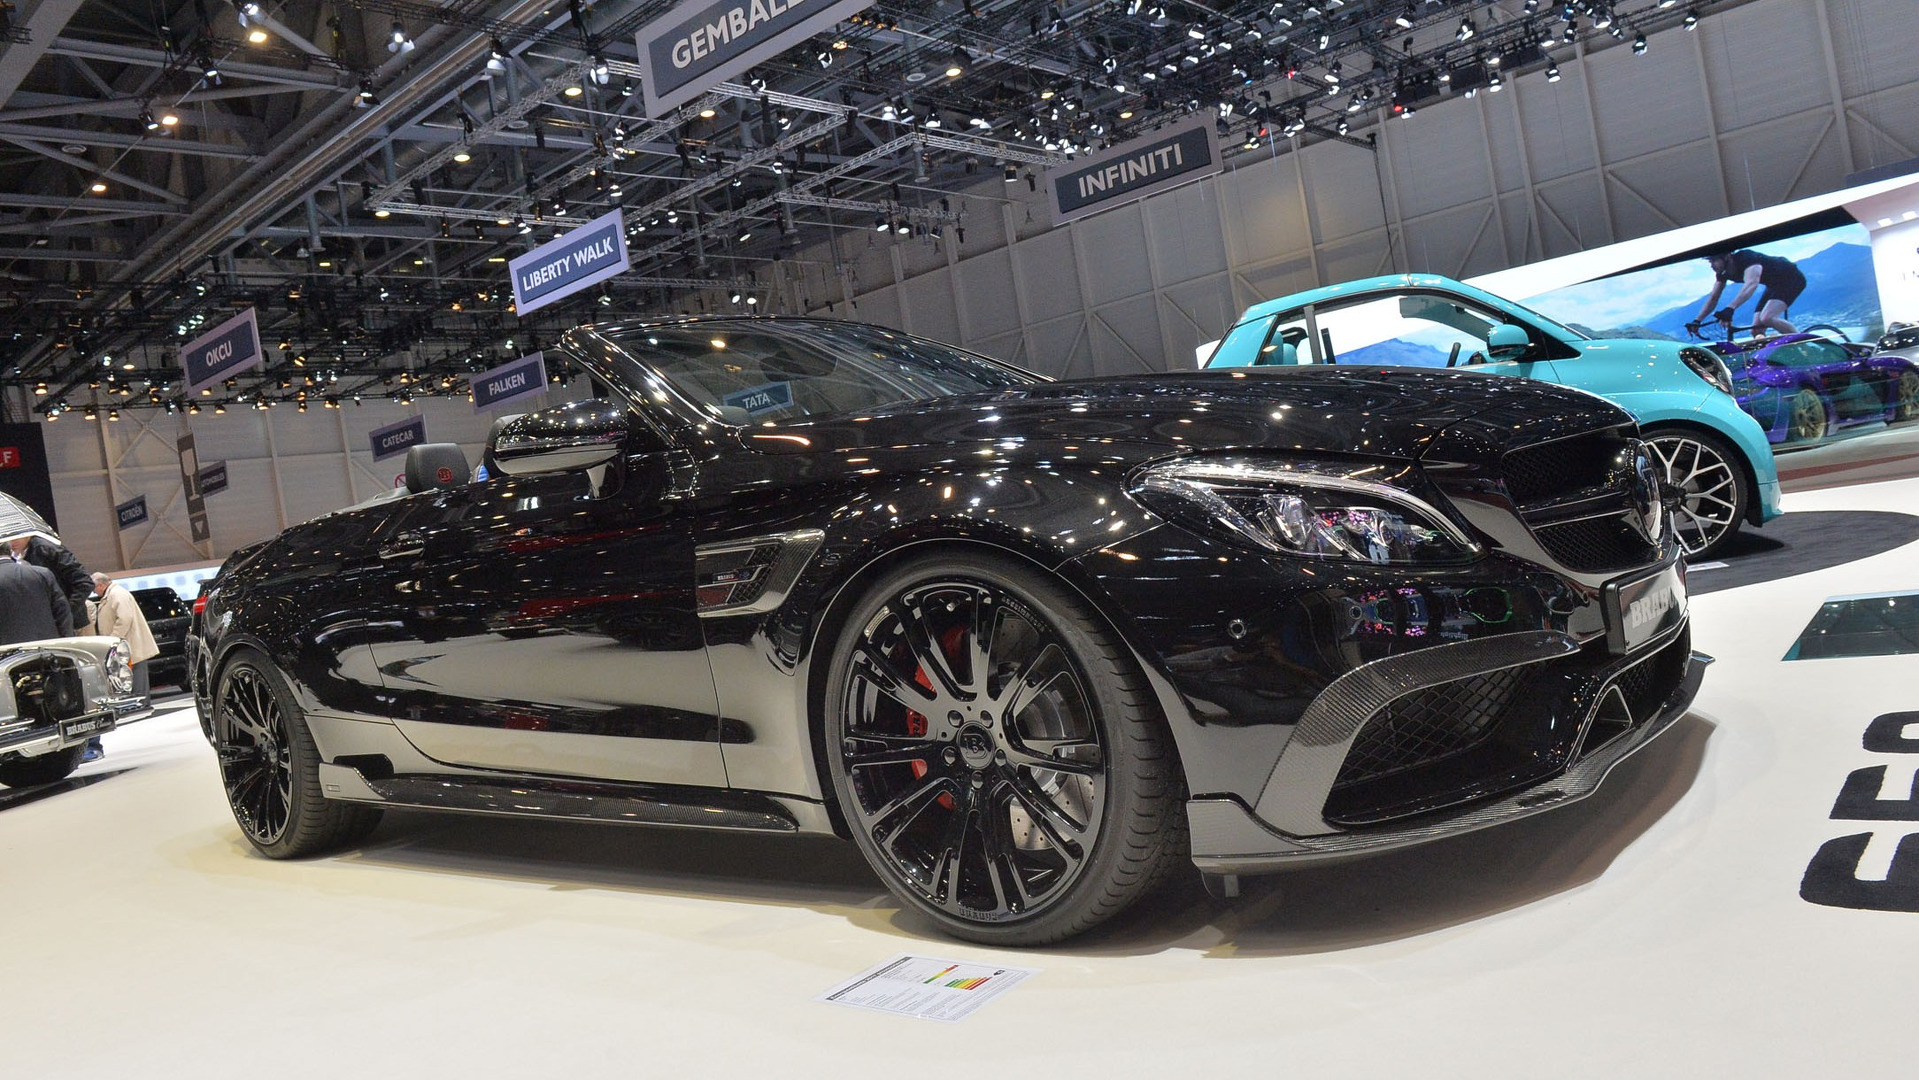 brabus brings sinister 200 mph mercedes amg c63 s cabriolet to geneva. Black Bedroom Furniture Sets. Home Design Ideas